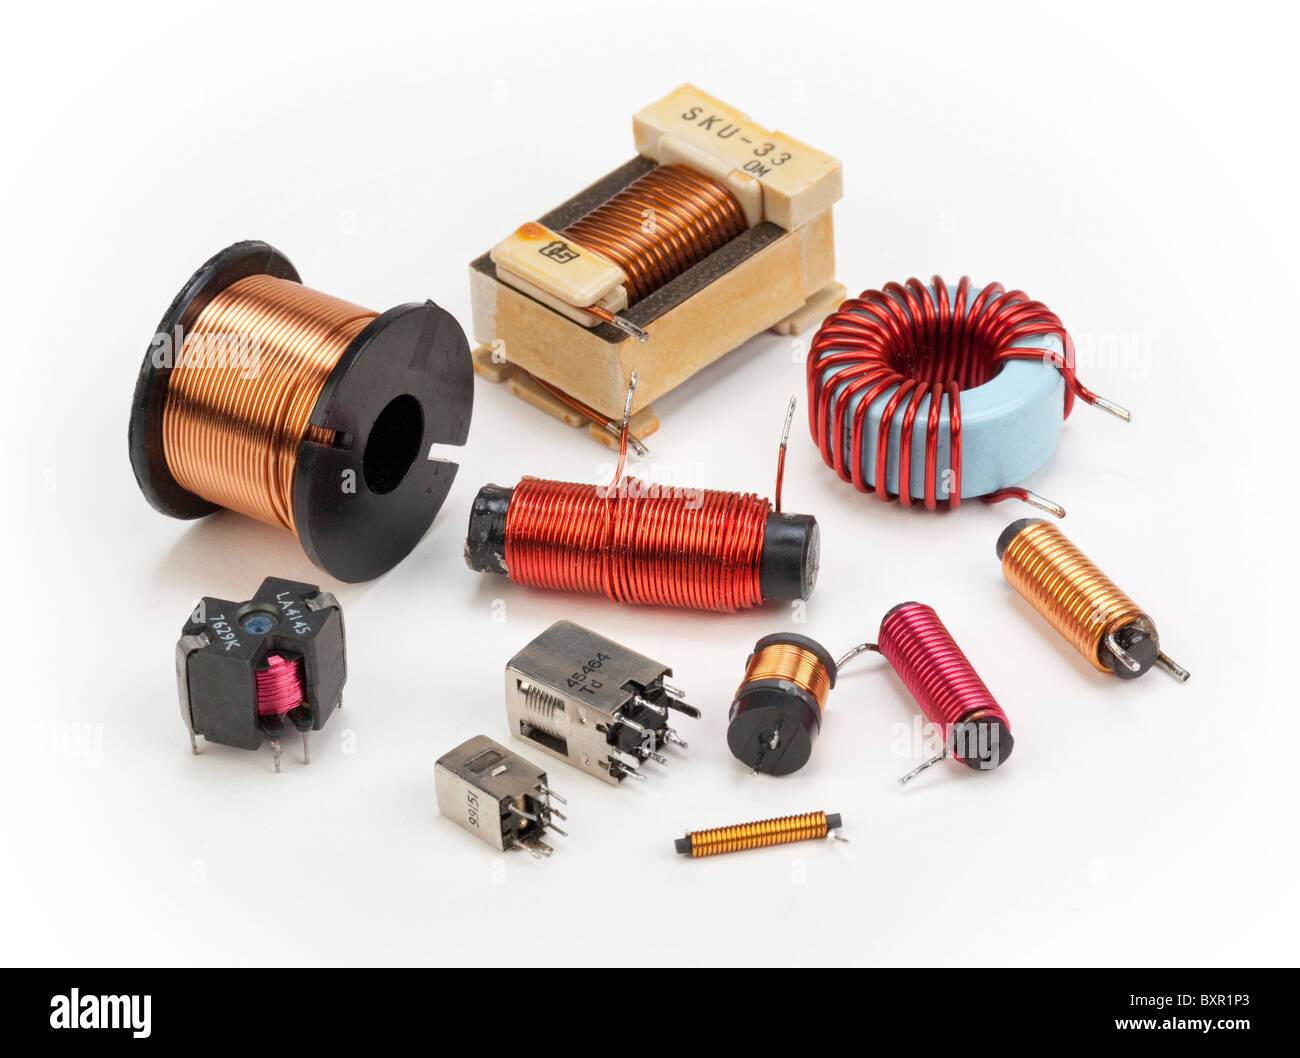 Inductor Stock Photos Images Alamy Circuit Speaker Using An Various Electrical Inductors And Coils Image